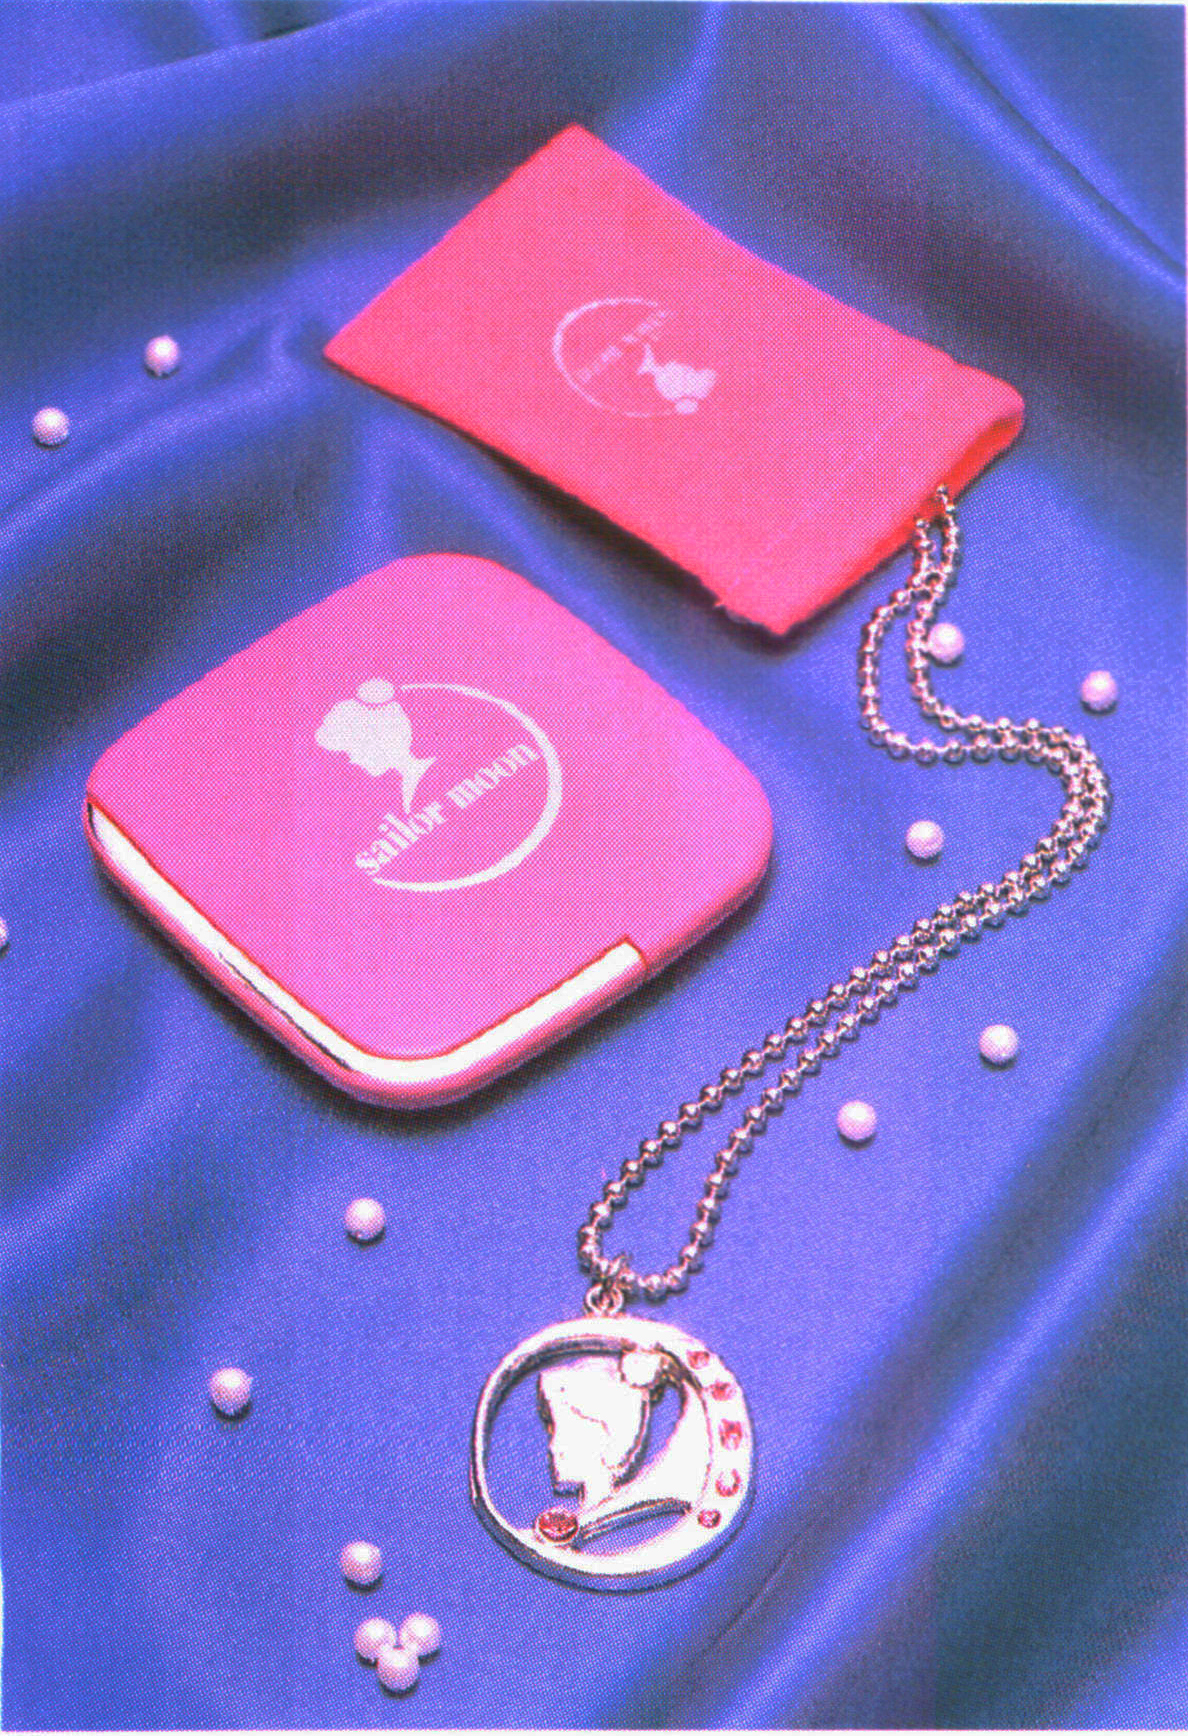 Sailor Moon merchandise: pendant and compact sold by Bandai